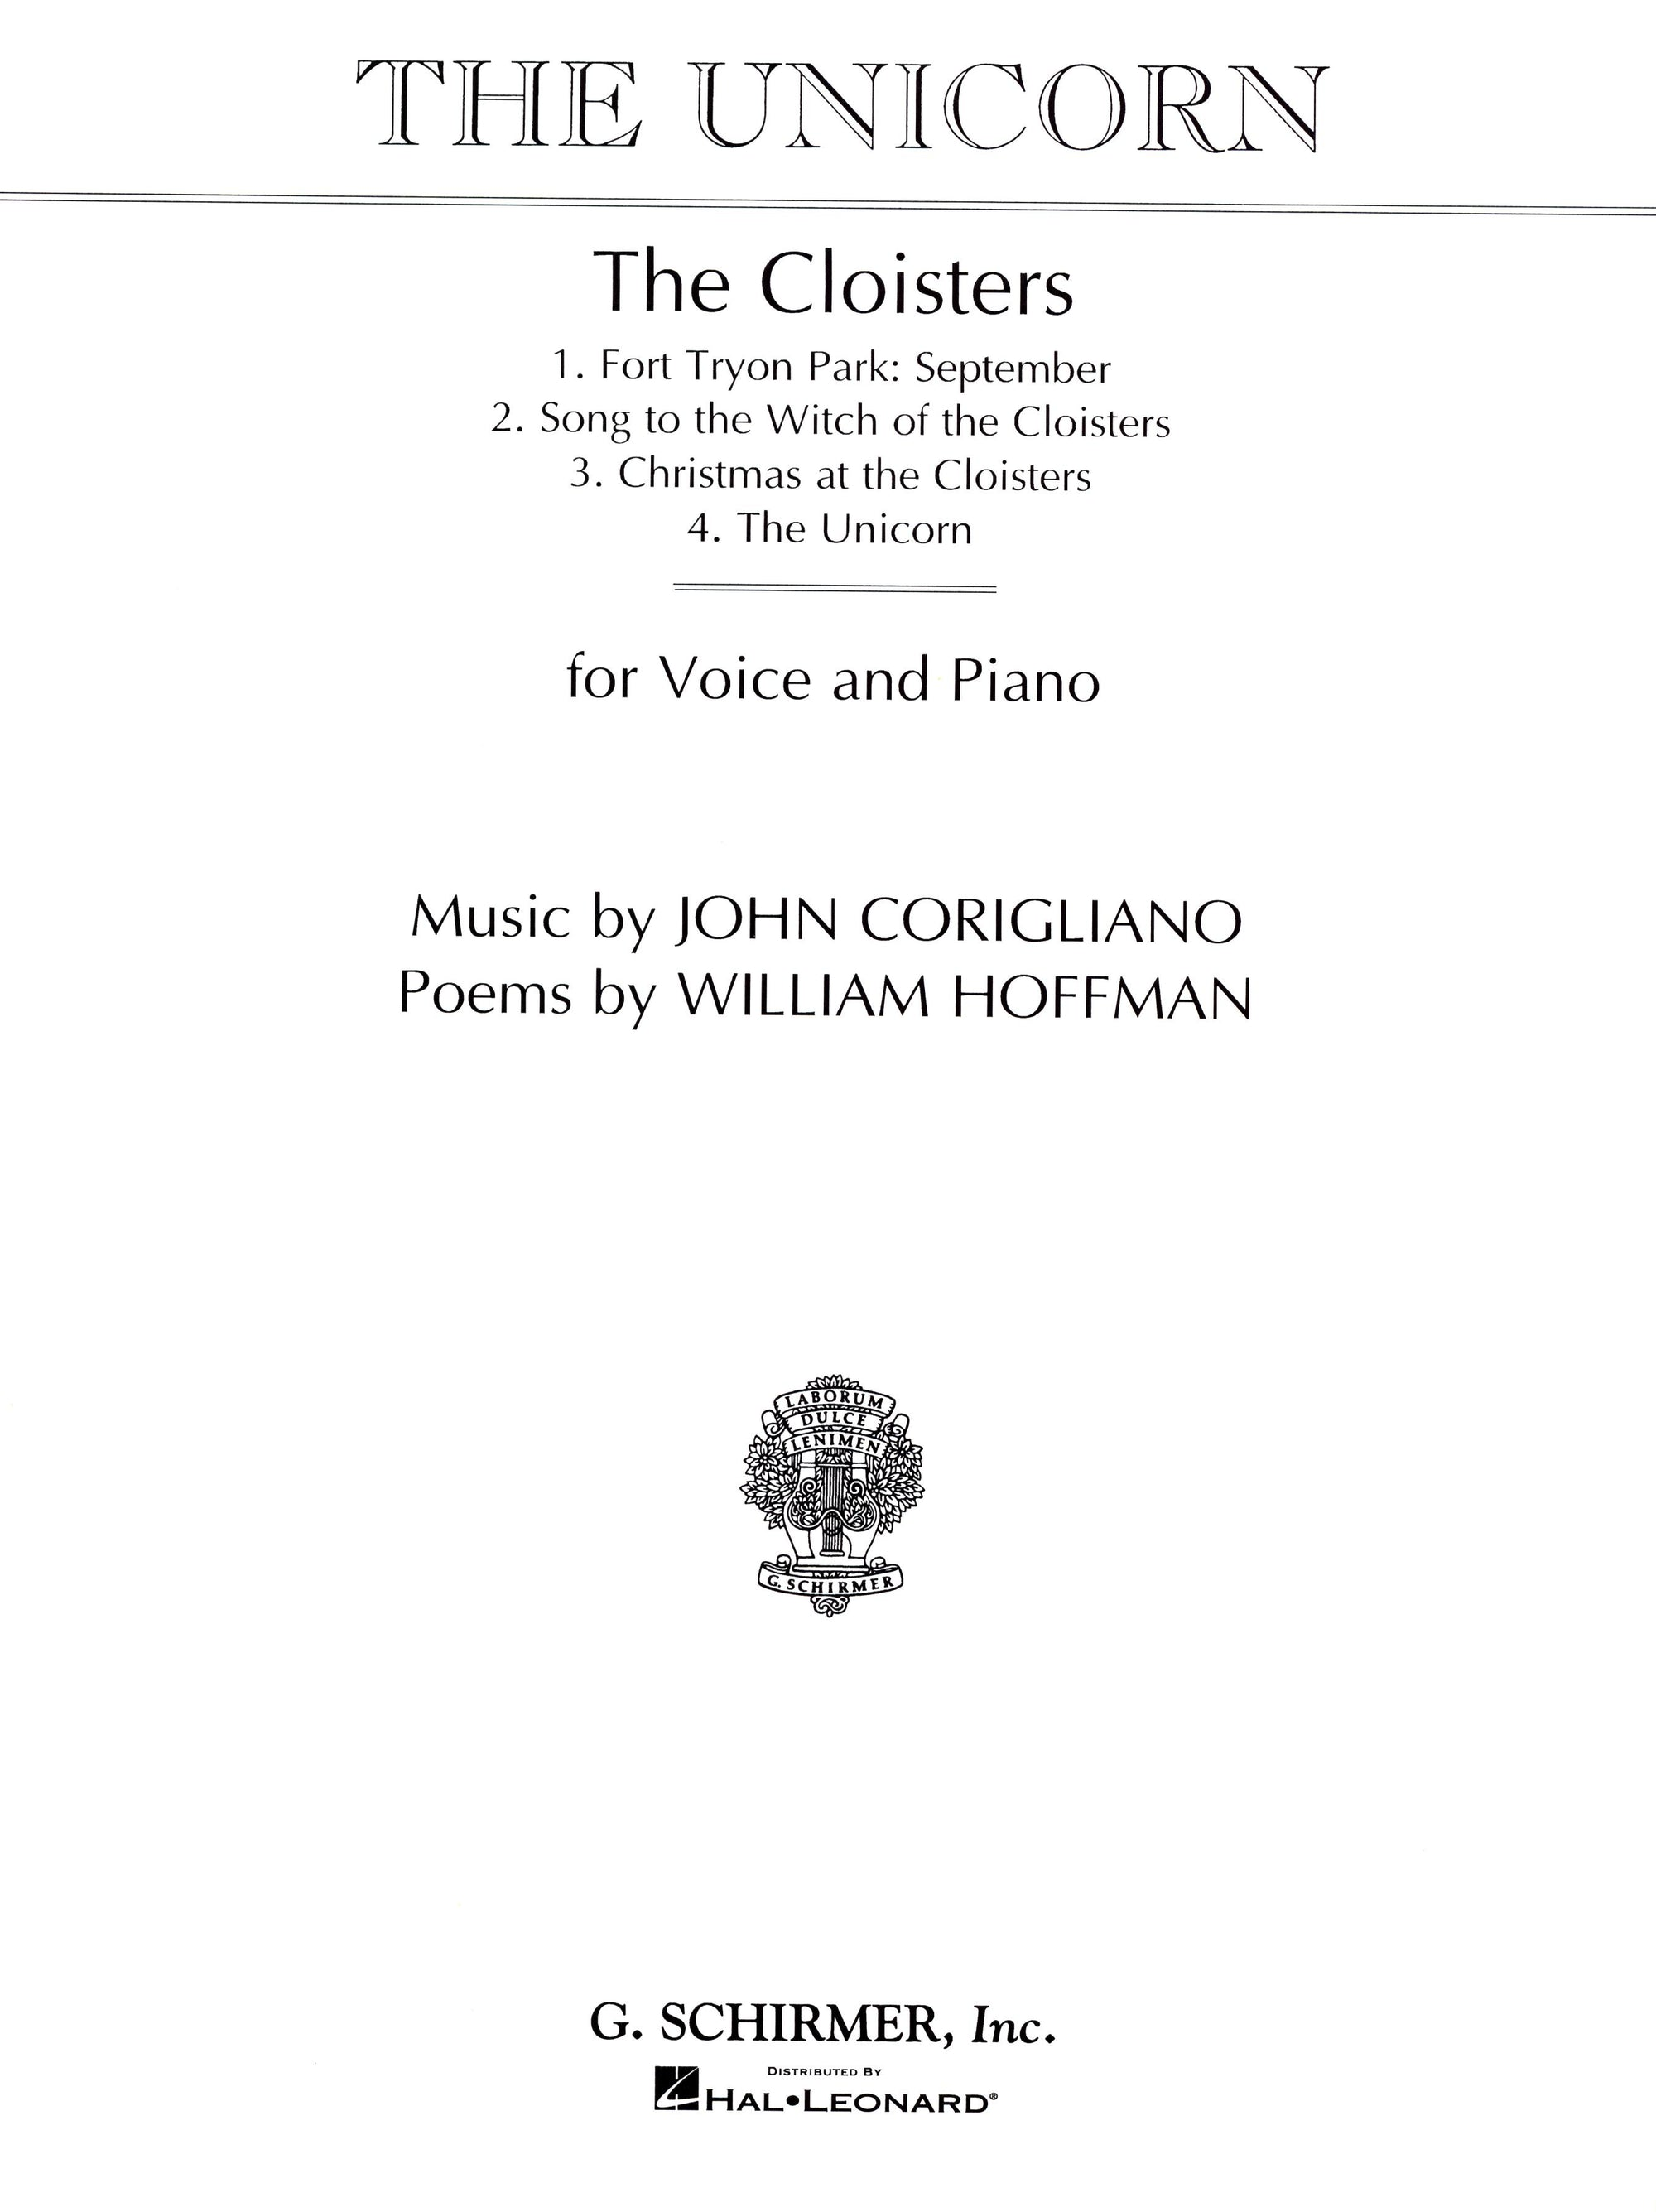 Corigliano: The Unicorn (from The Cloisters)